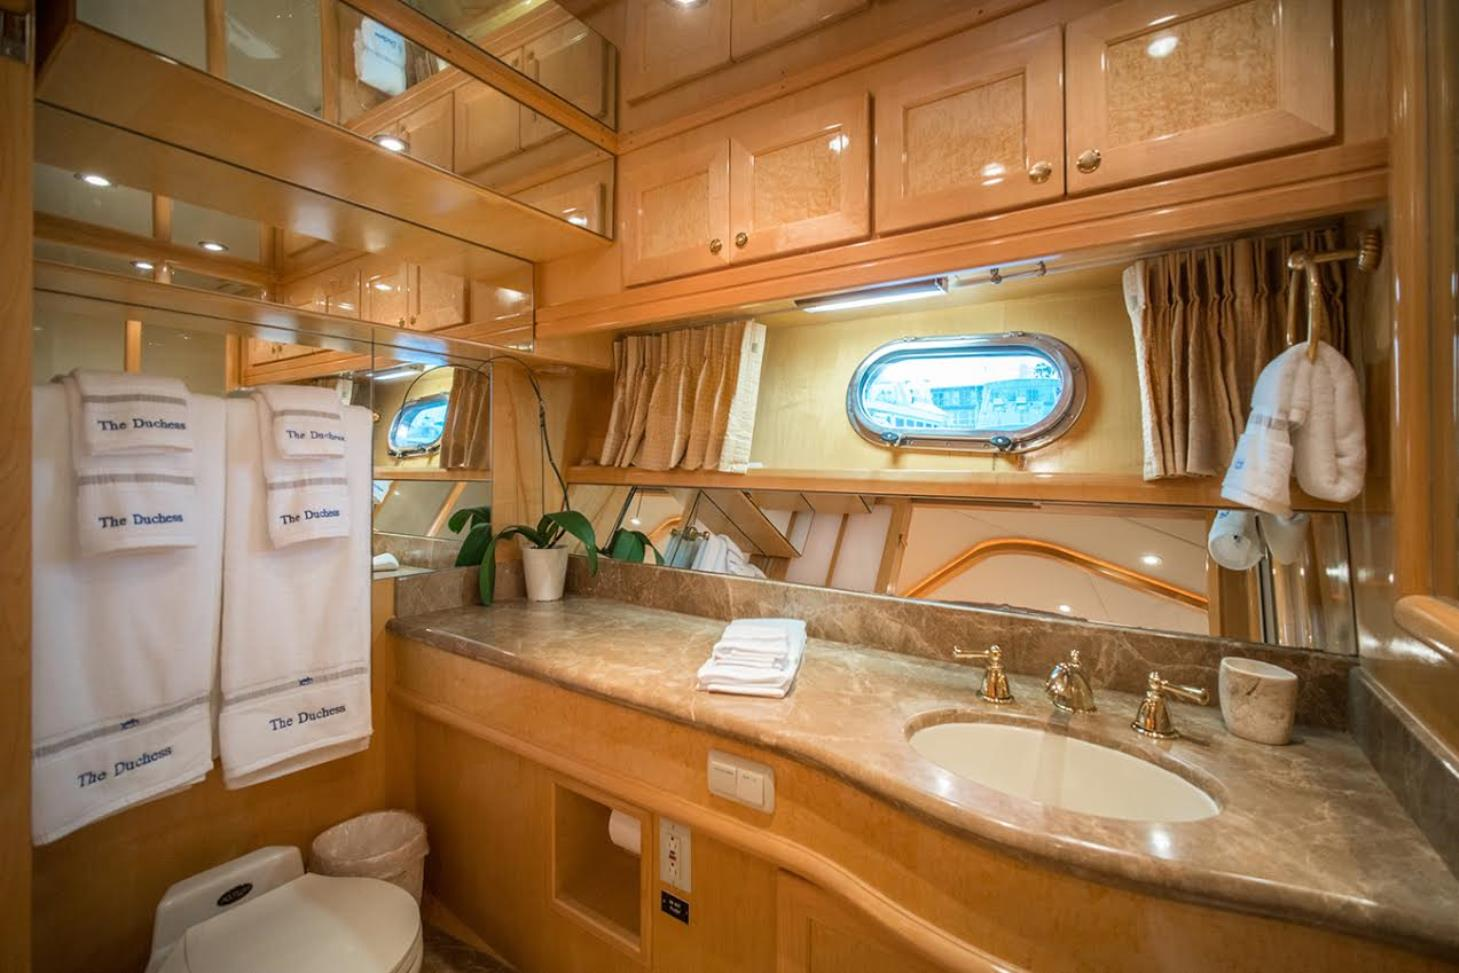 The Duchess Yacht Charter Service image 2